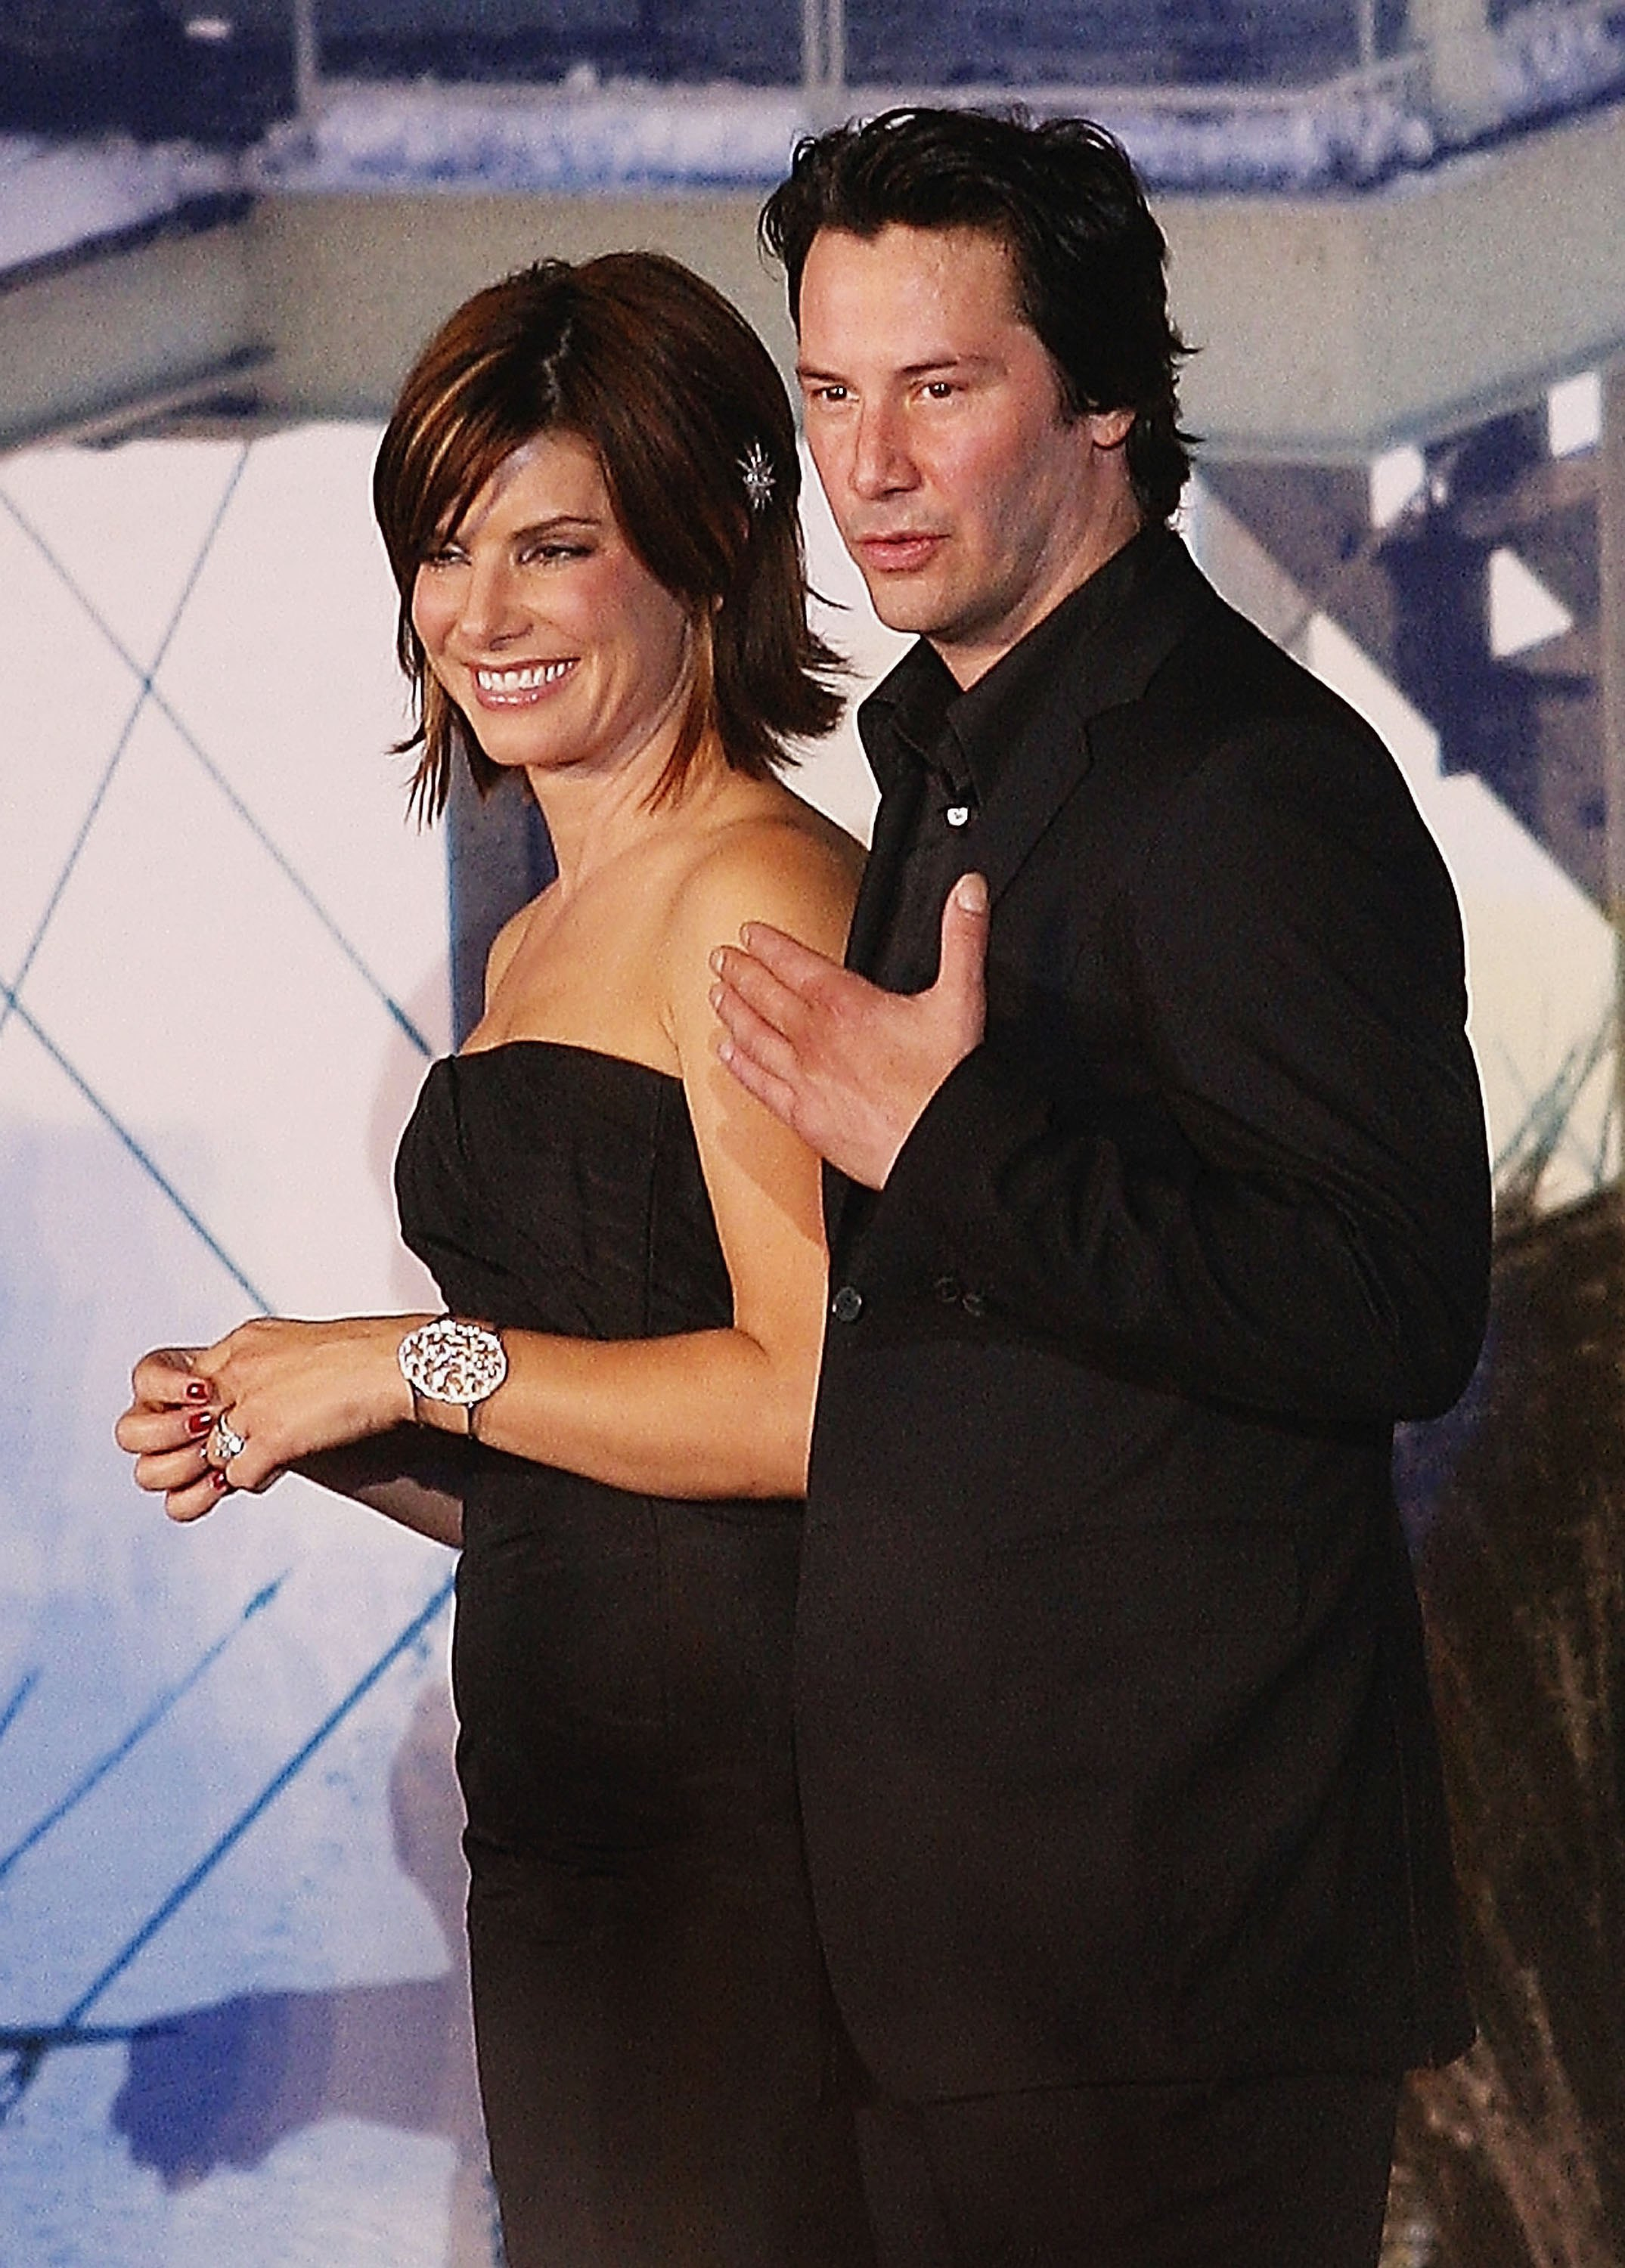 Actor Keanu Reeves and actress Sandra Bullock attend the Japanese Premiere for 'The Lake House' on September 4, 2006, in Tokyo, Japan. (Getty Images)